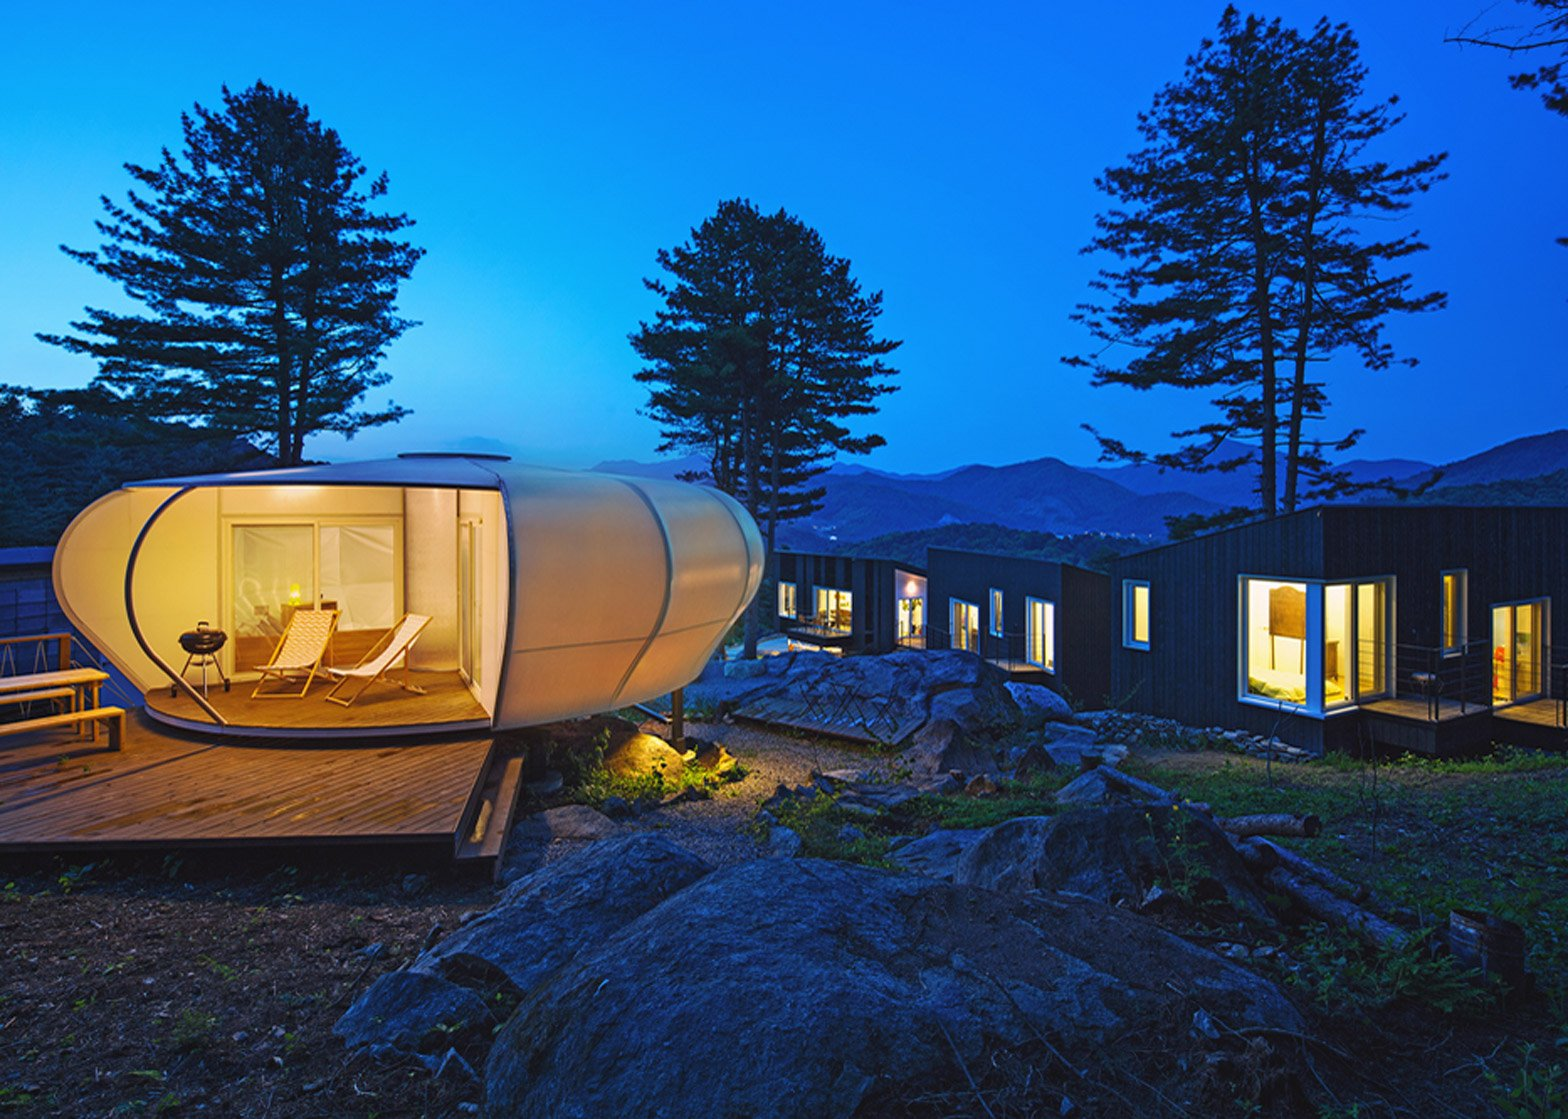 Glamping on the Rock by ArchiWorkshop, South Korea